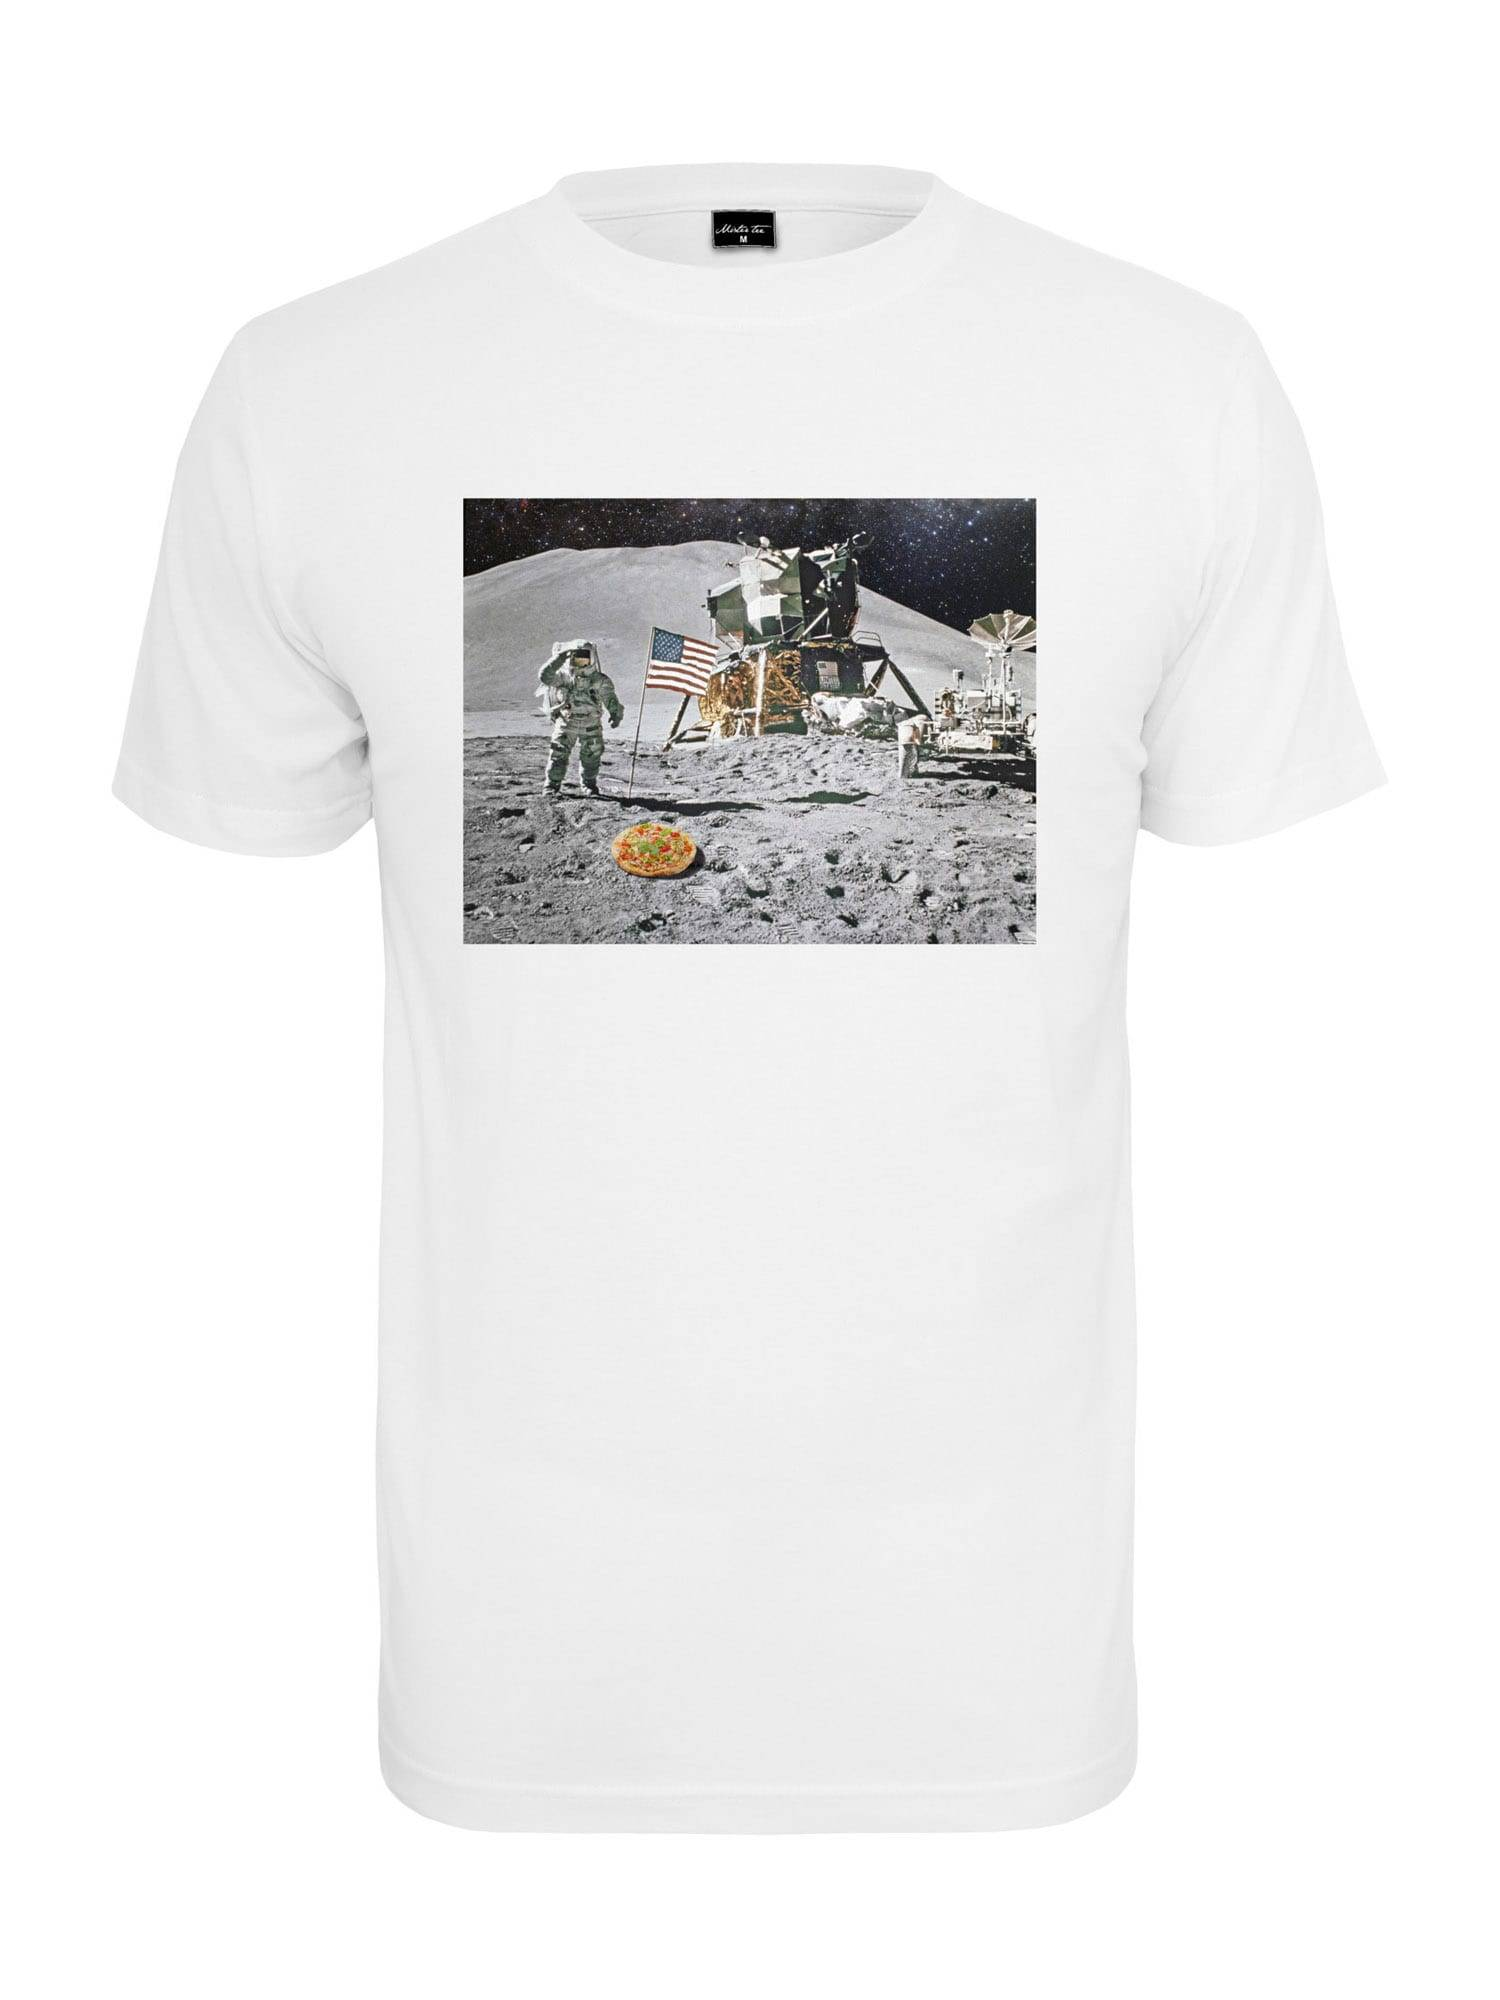 Tee T-Shirt 'Pizza Moon'  - Blanc - Taille: L - male